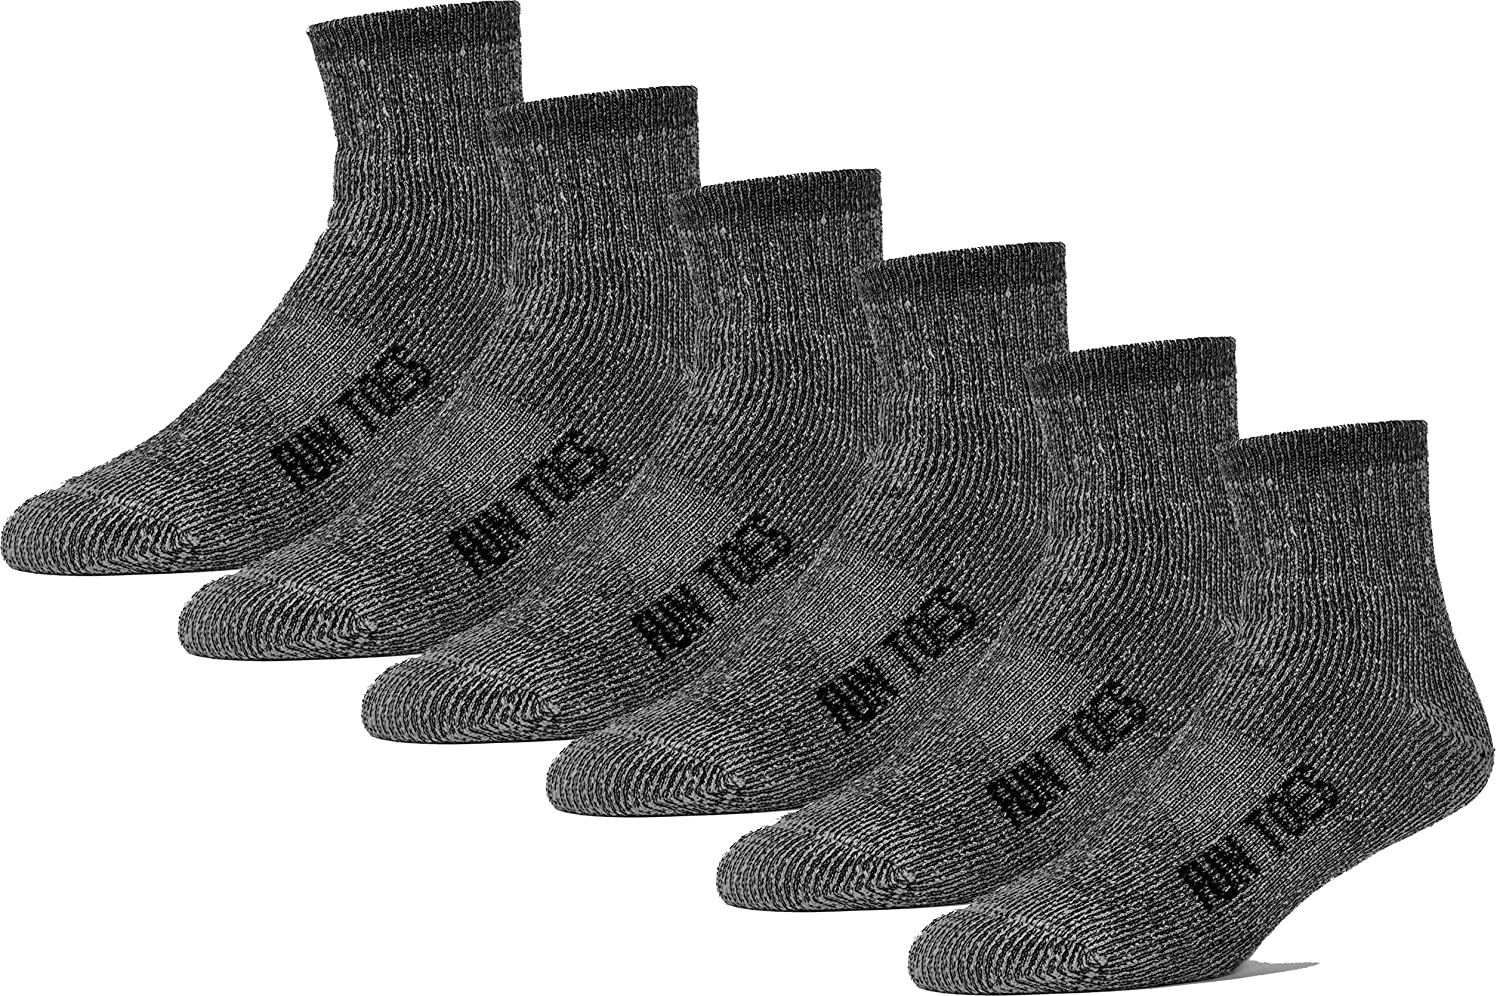 FUN TOES Men's 80% Wool Ankle Socks 6 Pack Strong Arch Support Winter Cushioned Bottom Ideal for Hiking